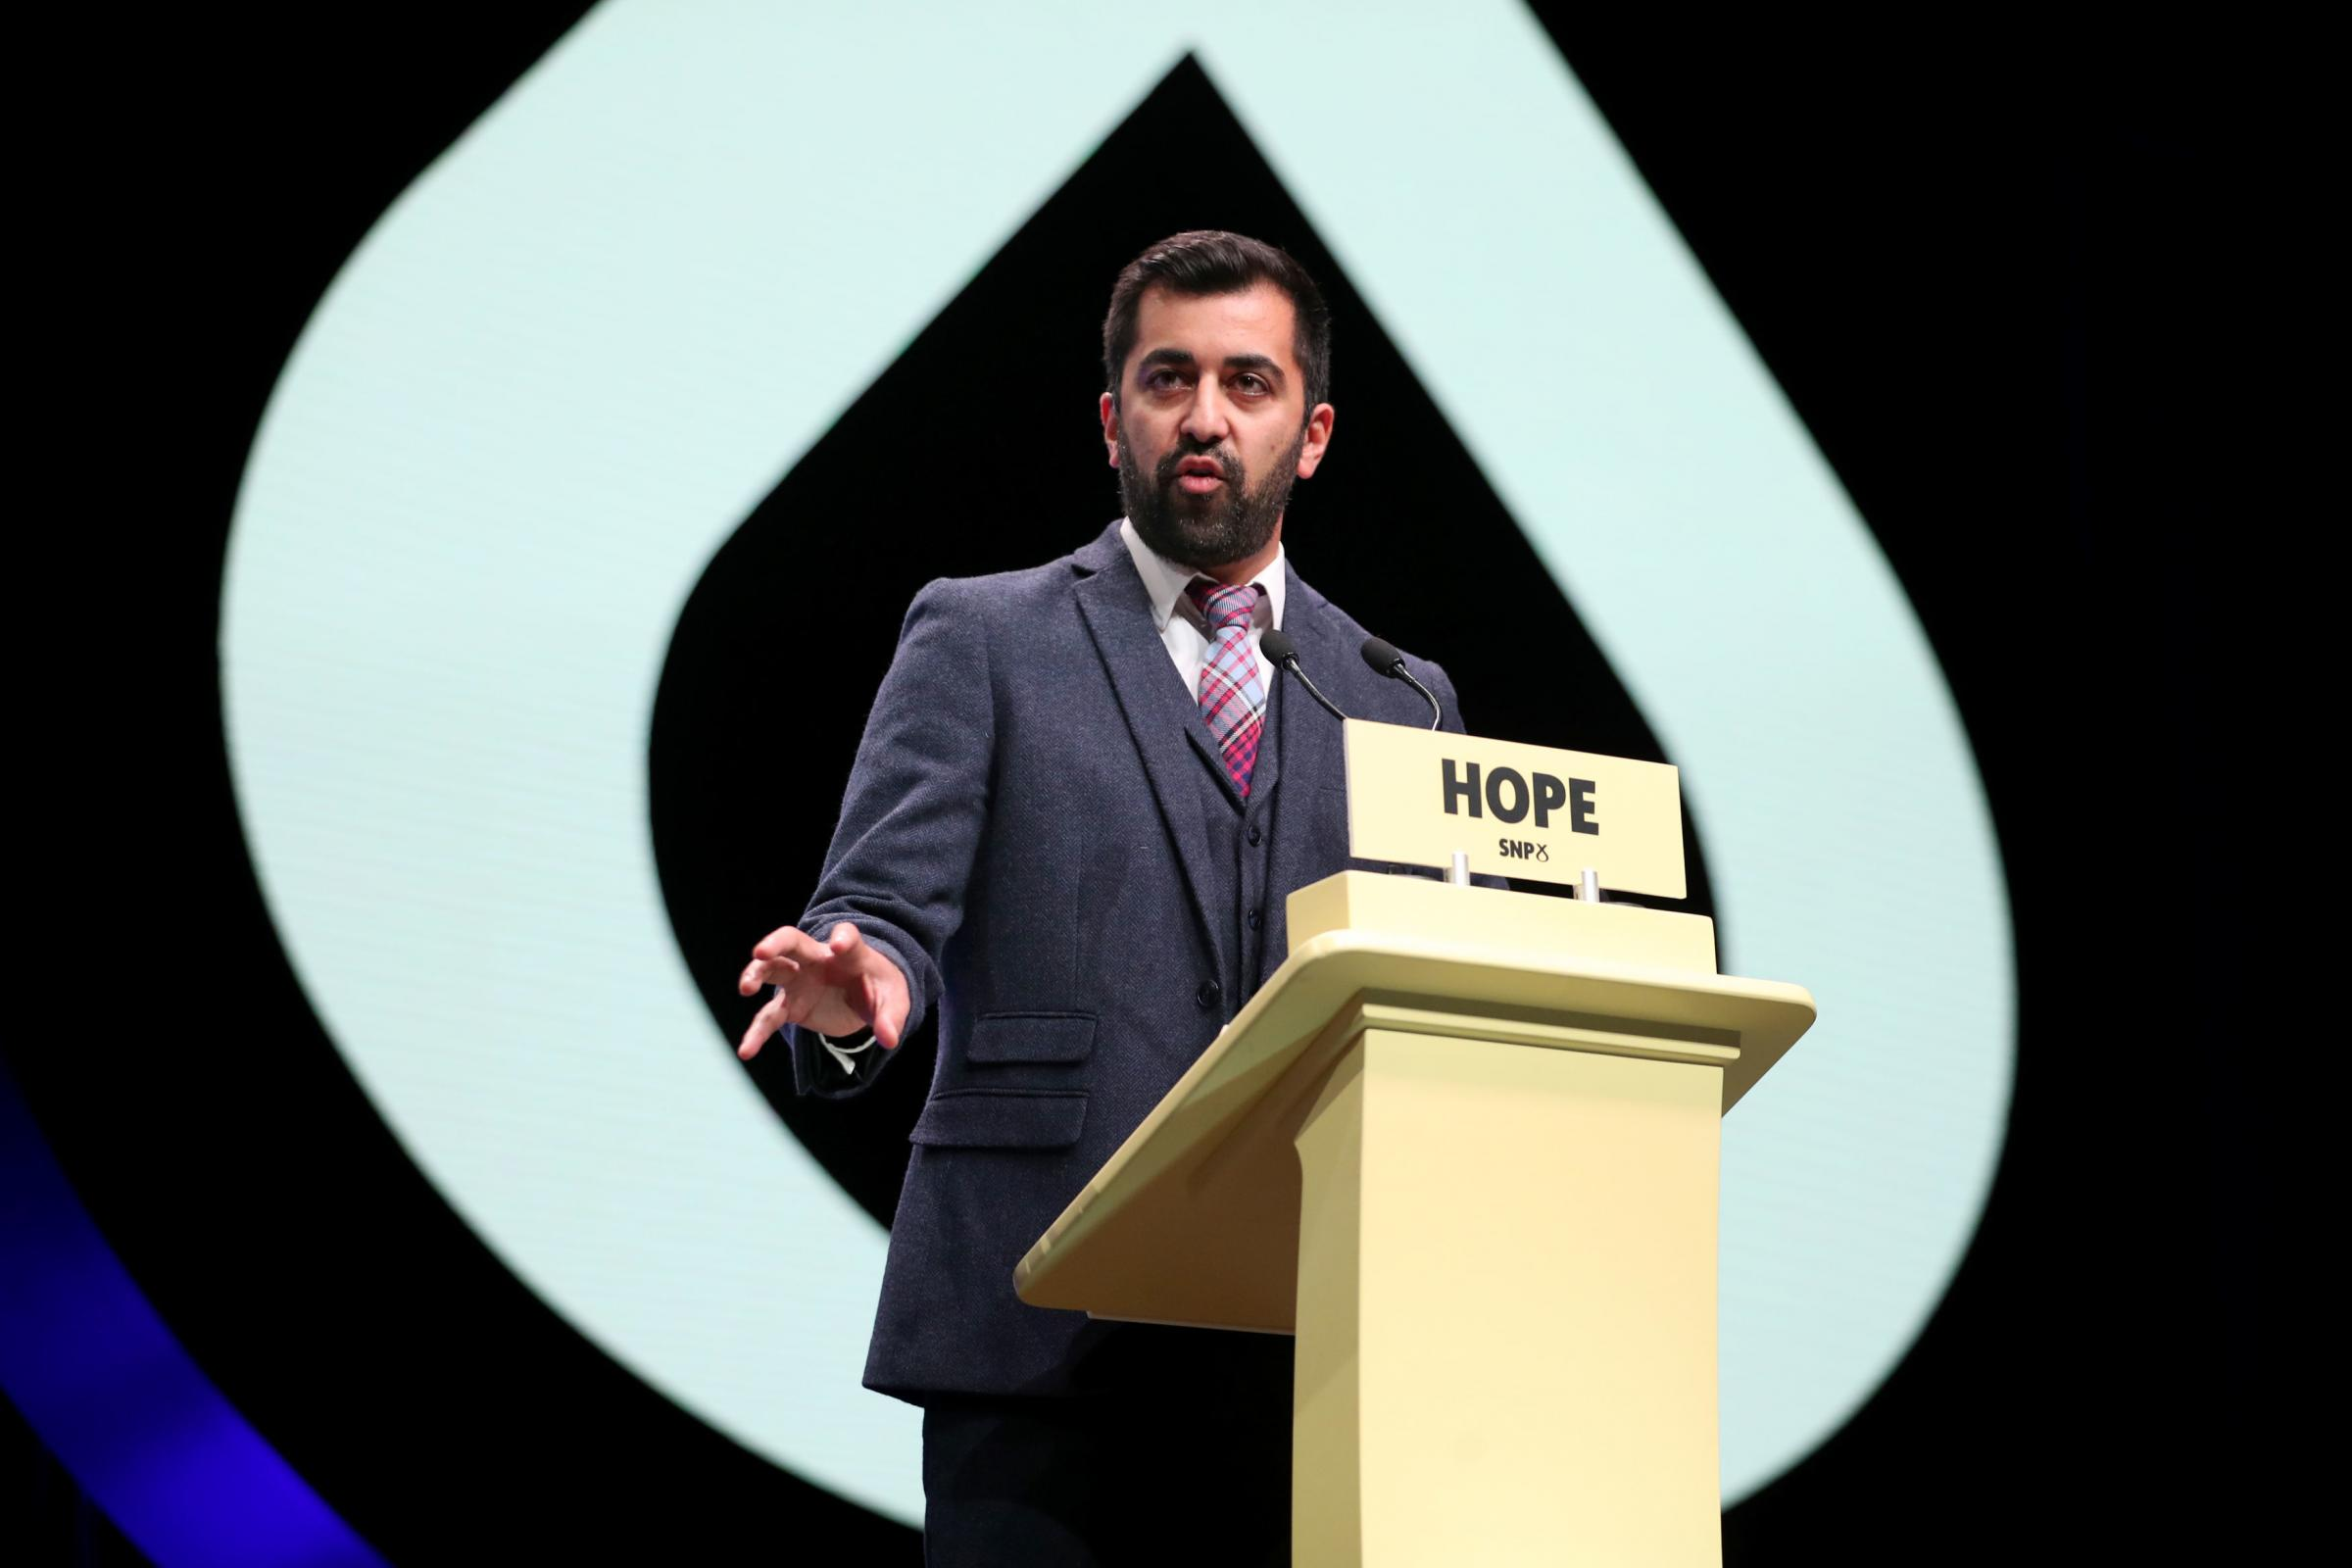 Humza Yousaf questioned 'structural racism' in the Labour Party